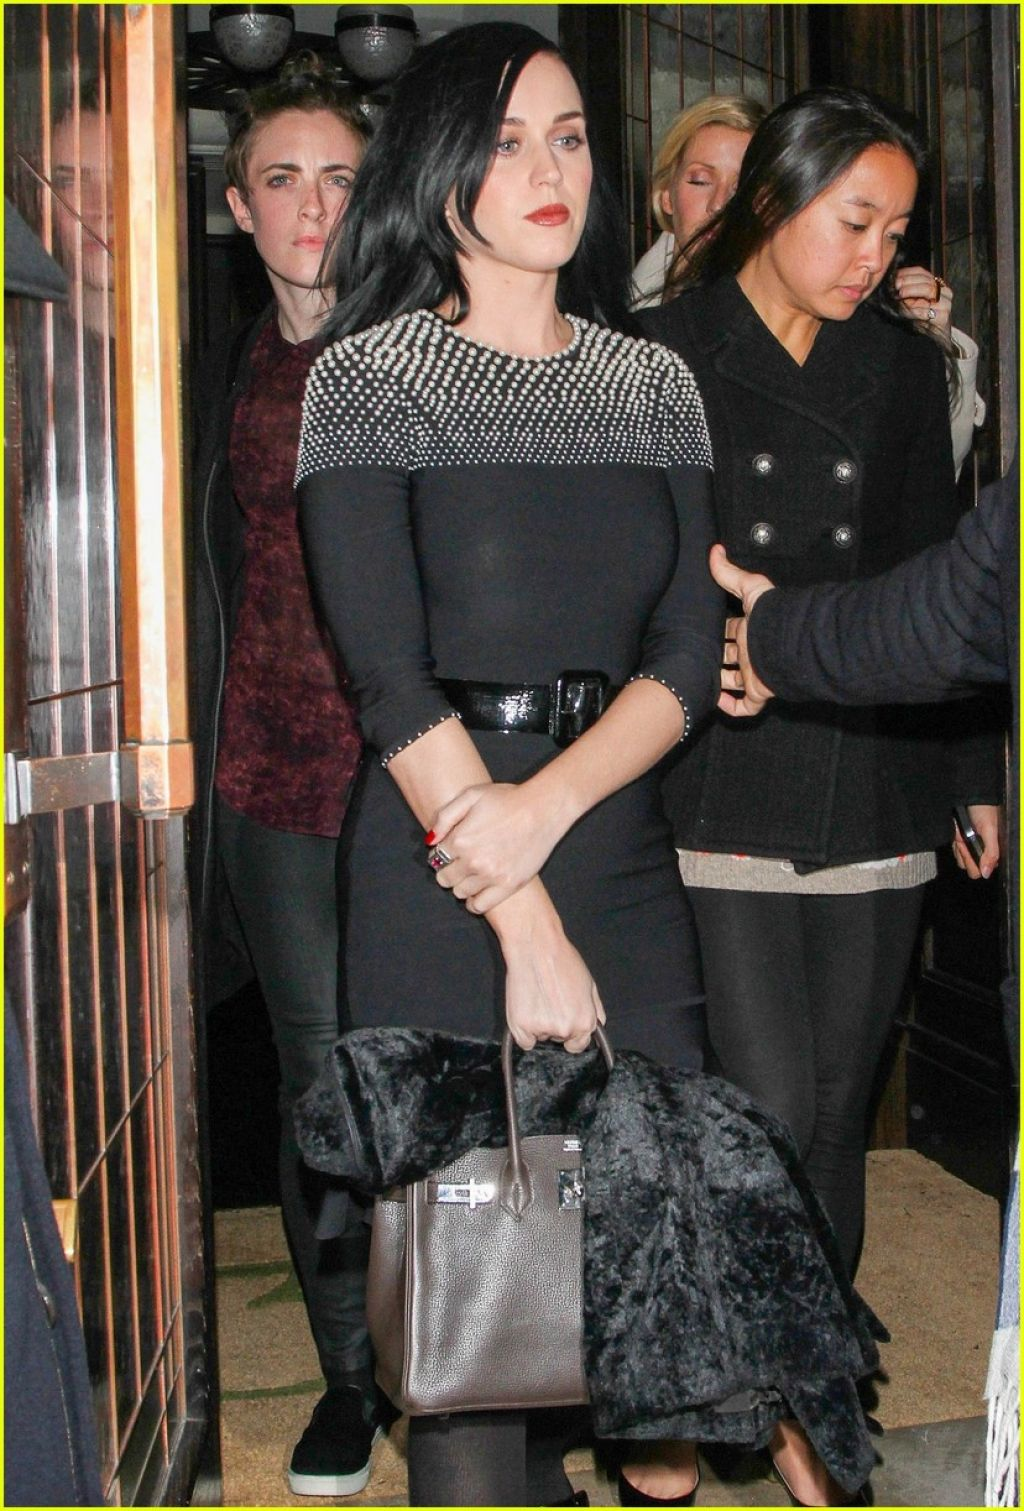 Katy Perry Style - Leaving Restaurant 34 in London - December 2013